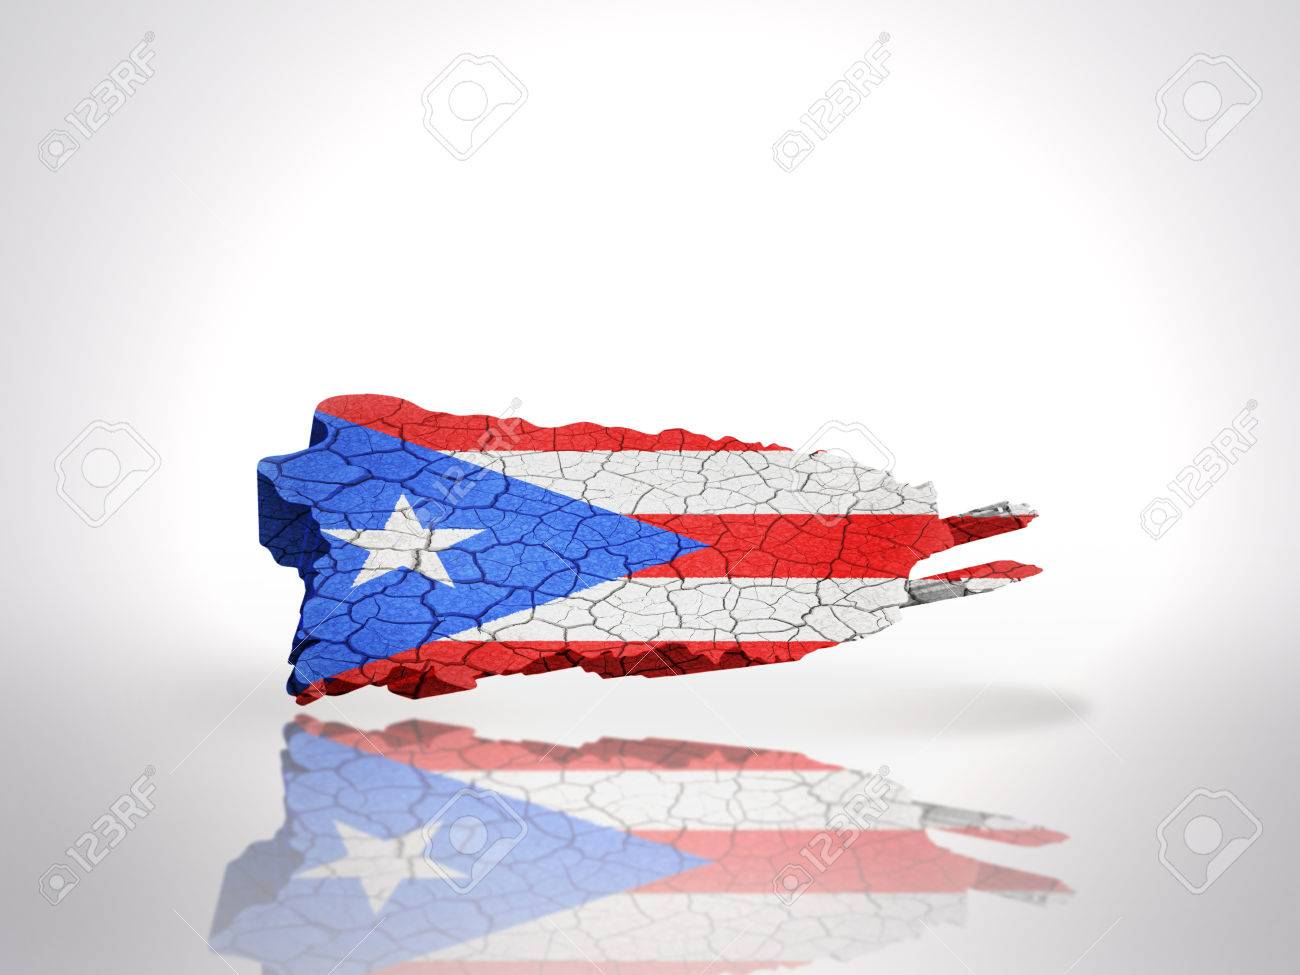 Free Download Map Of Puerto Rico With Puerto Rican Flag On A White